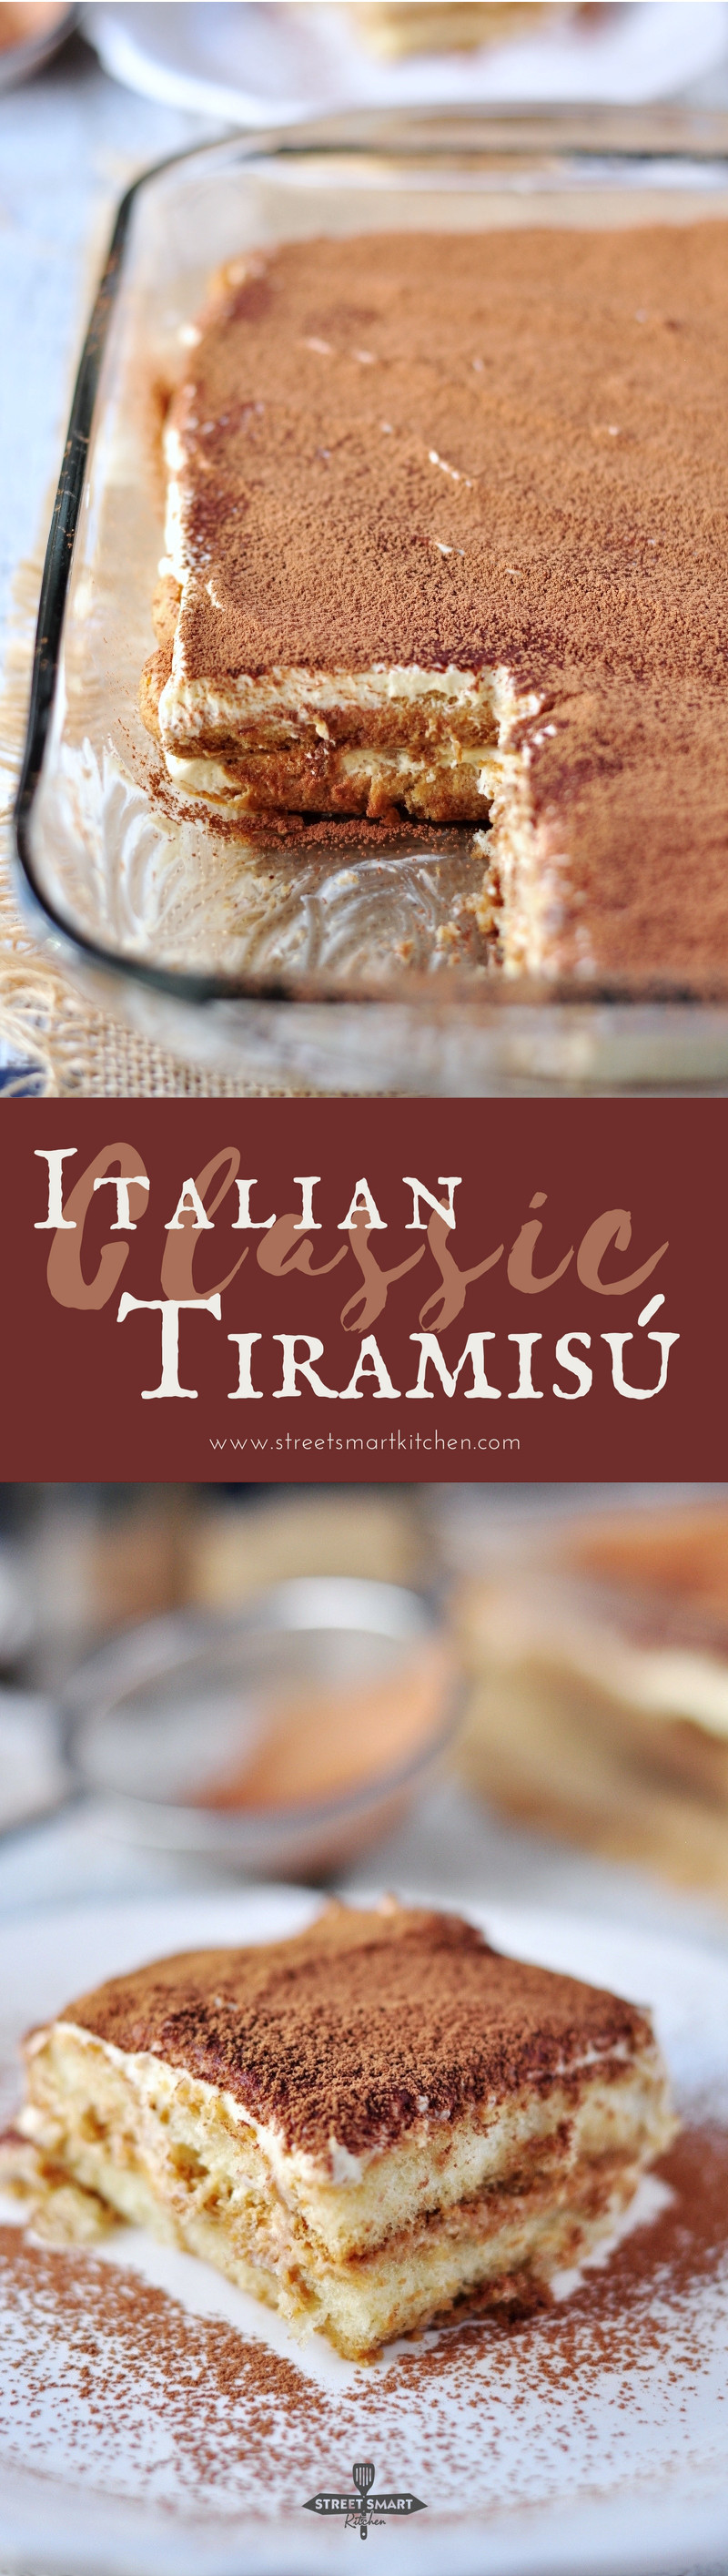 When the original can't really be improved, it's a classic. This Classic Italian Tiramisu is one of these classics. Watch our video to learn how to make it.